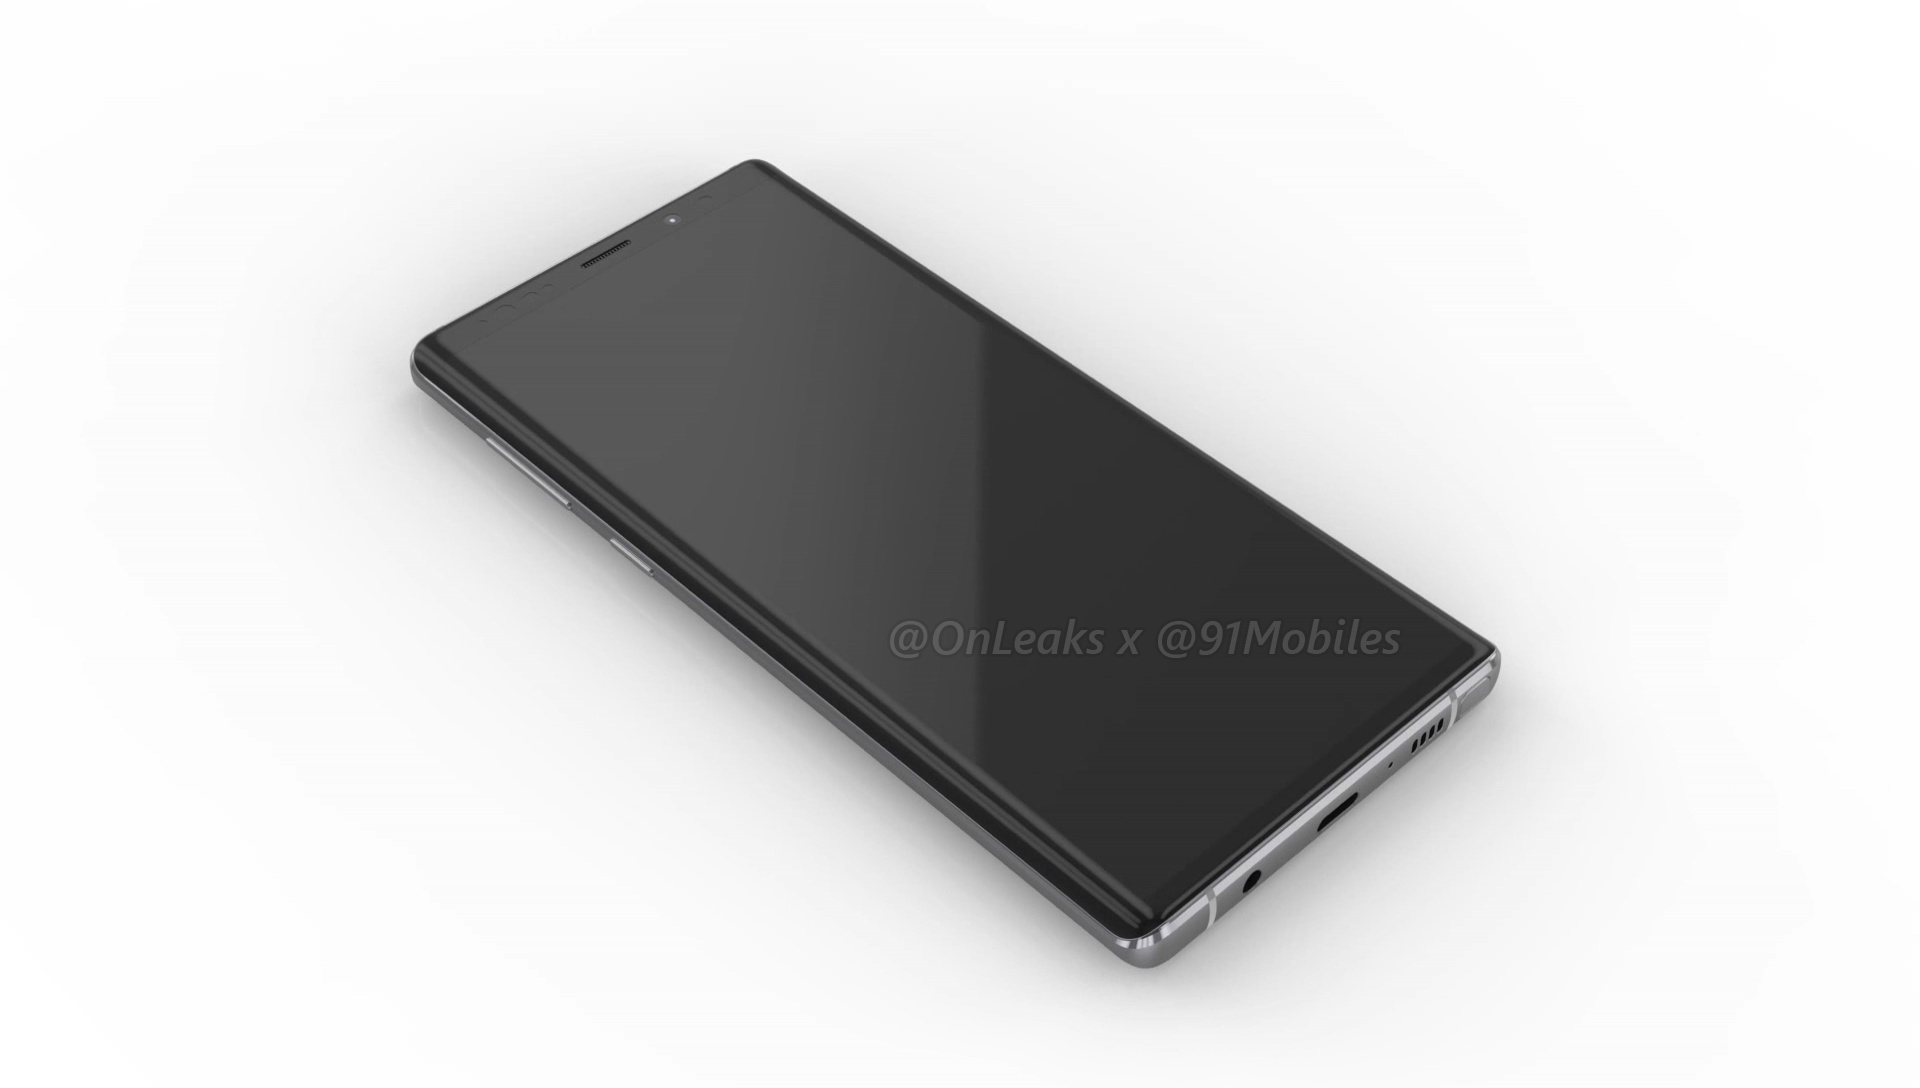 Samsung-Galaxy-Note-9-render-91mobiles-1